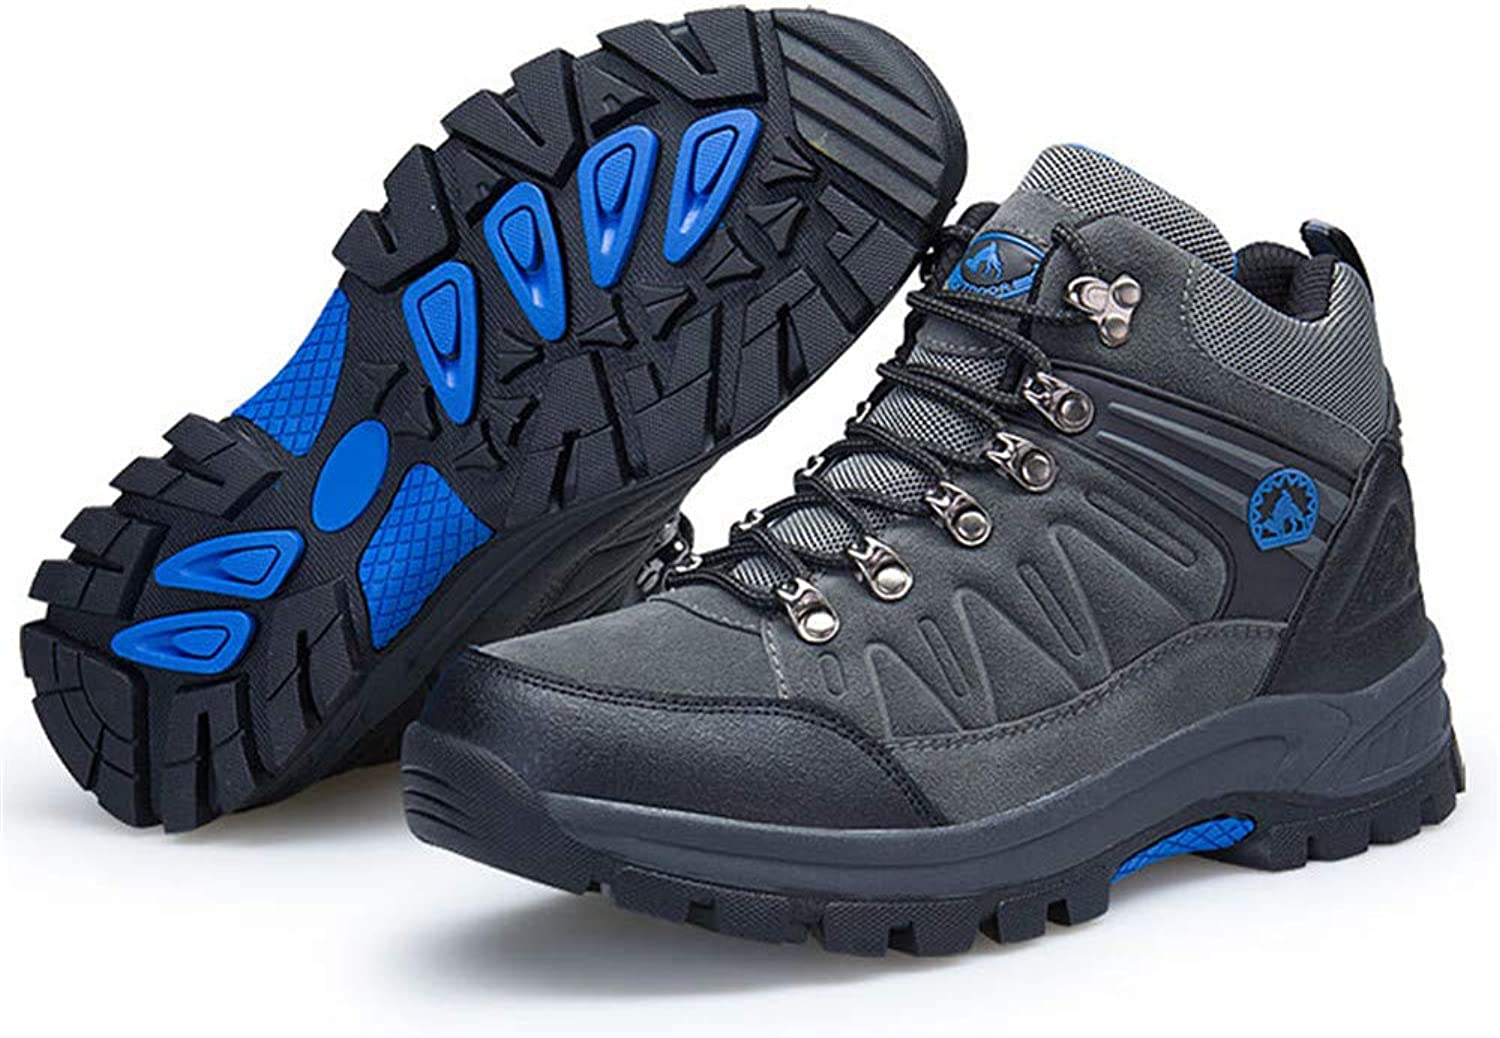 TMSE Outdoor Hiking shoes Men Help, Autumn and Winter Black